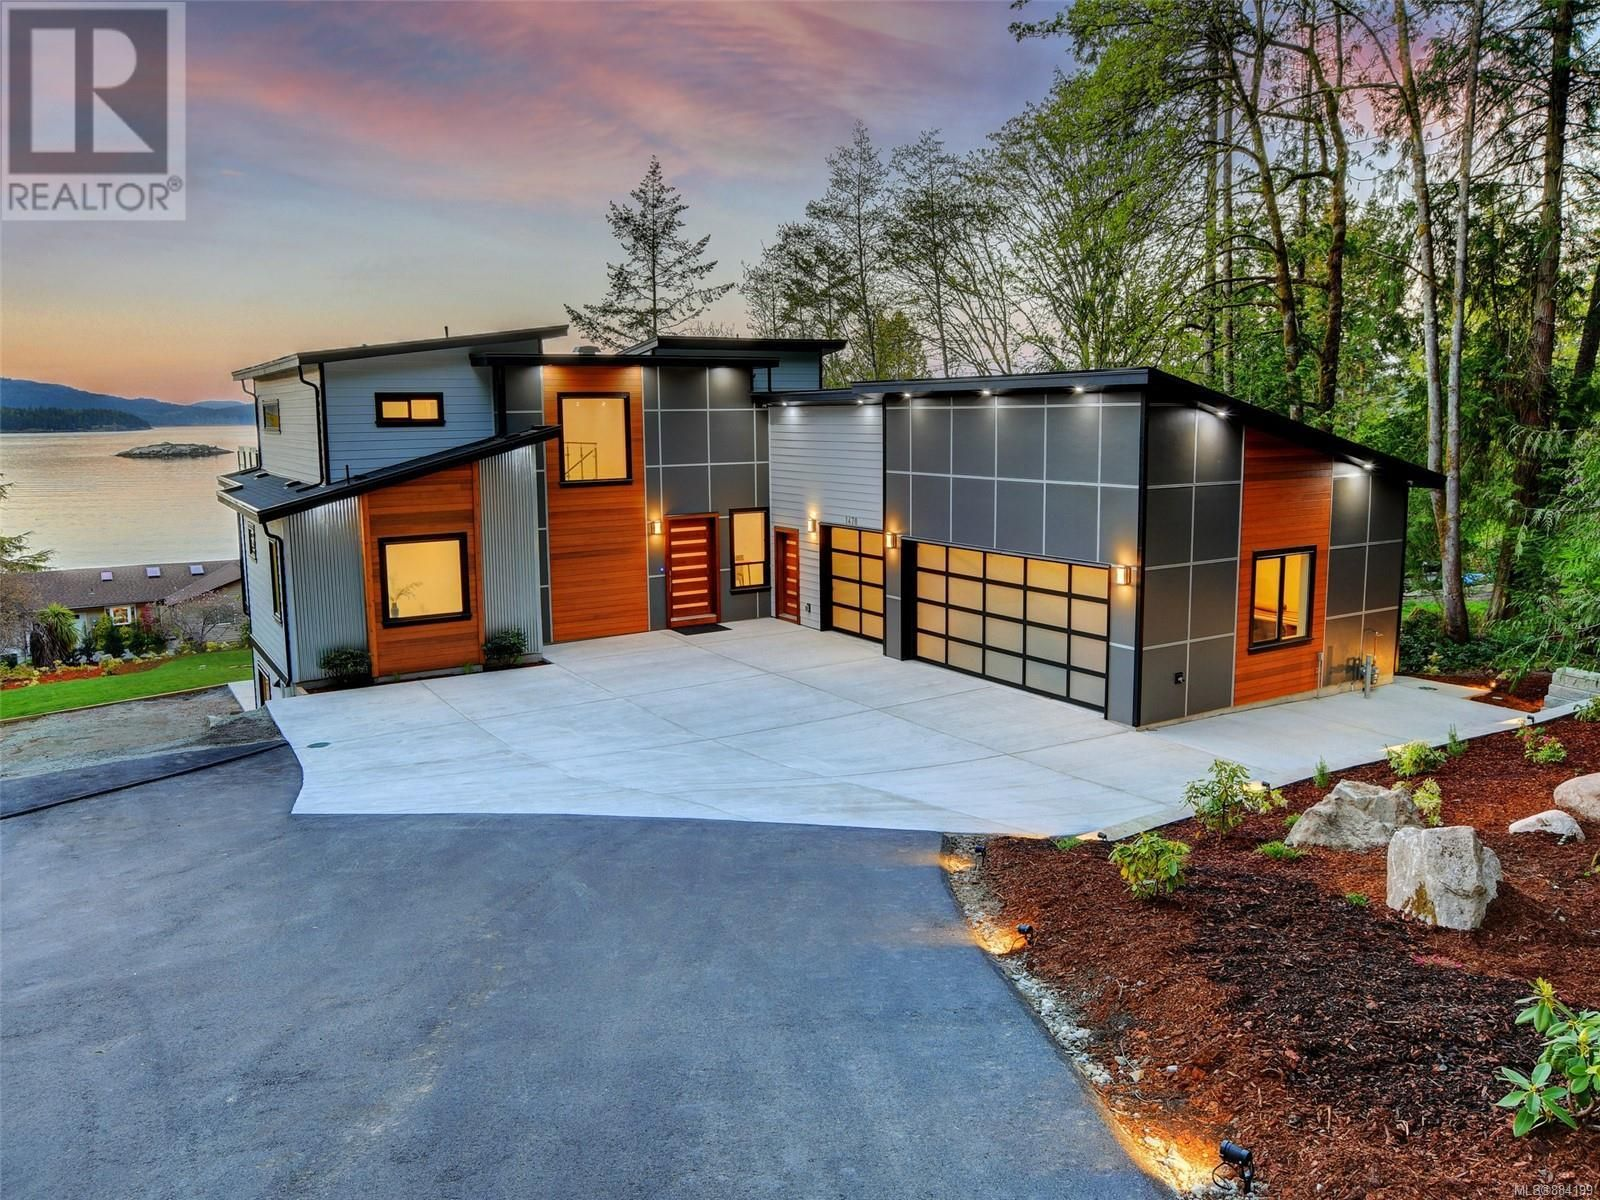 Main Photo: 1470 Lands End Rd in North Saanich: House for sale : MLS®# 884199